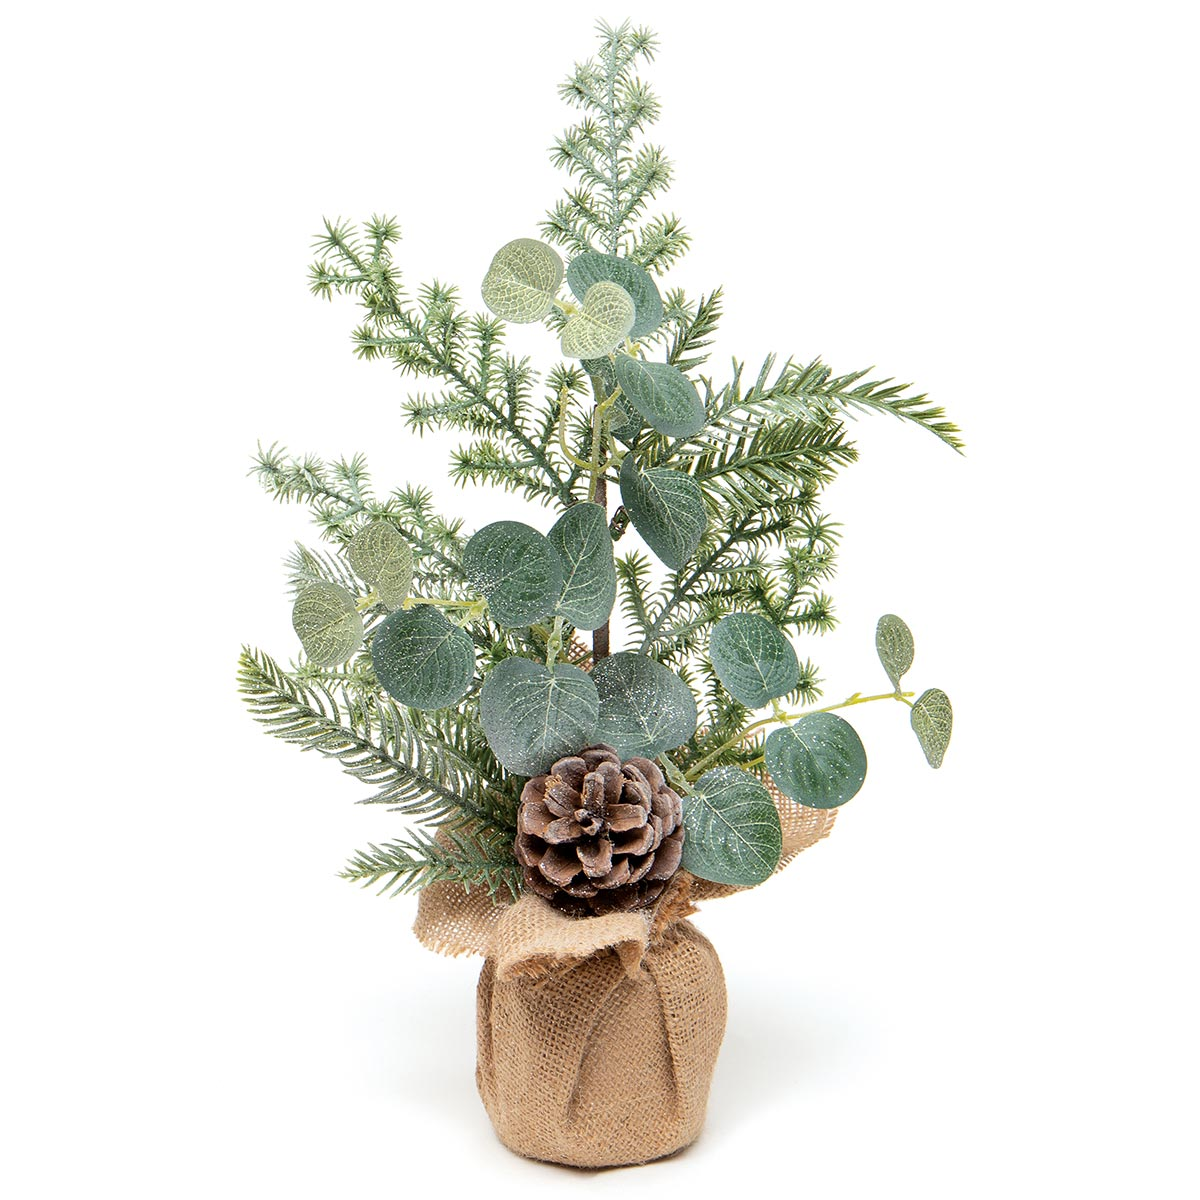 FROSTED PINE MINI TREE IN BURLAP BASE WITH EUCALYPTUS